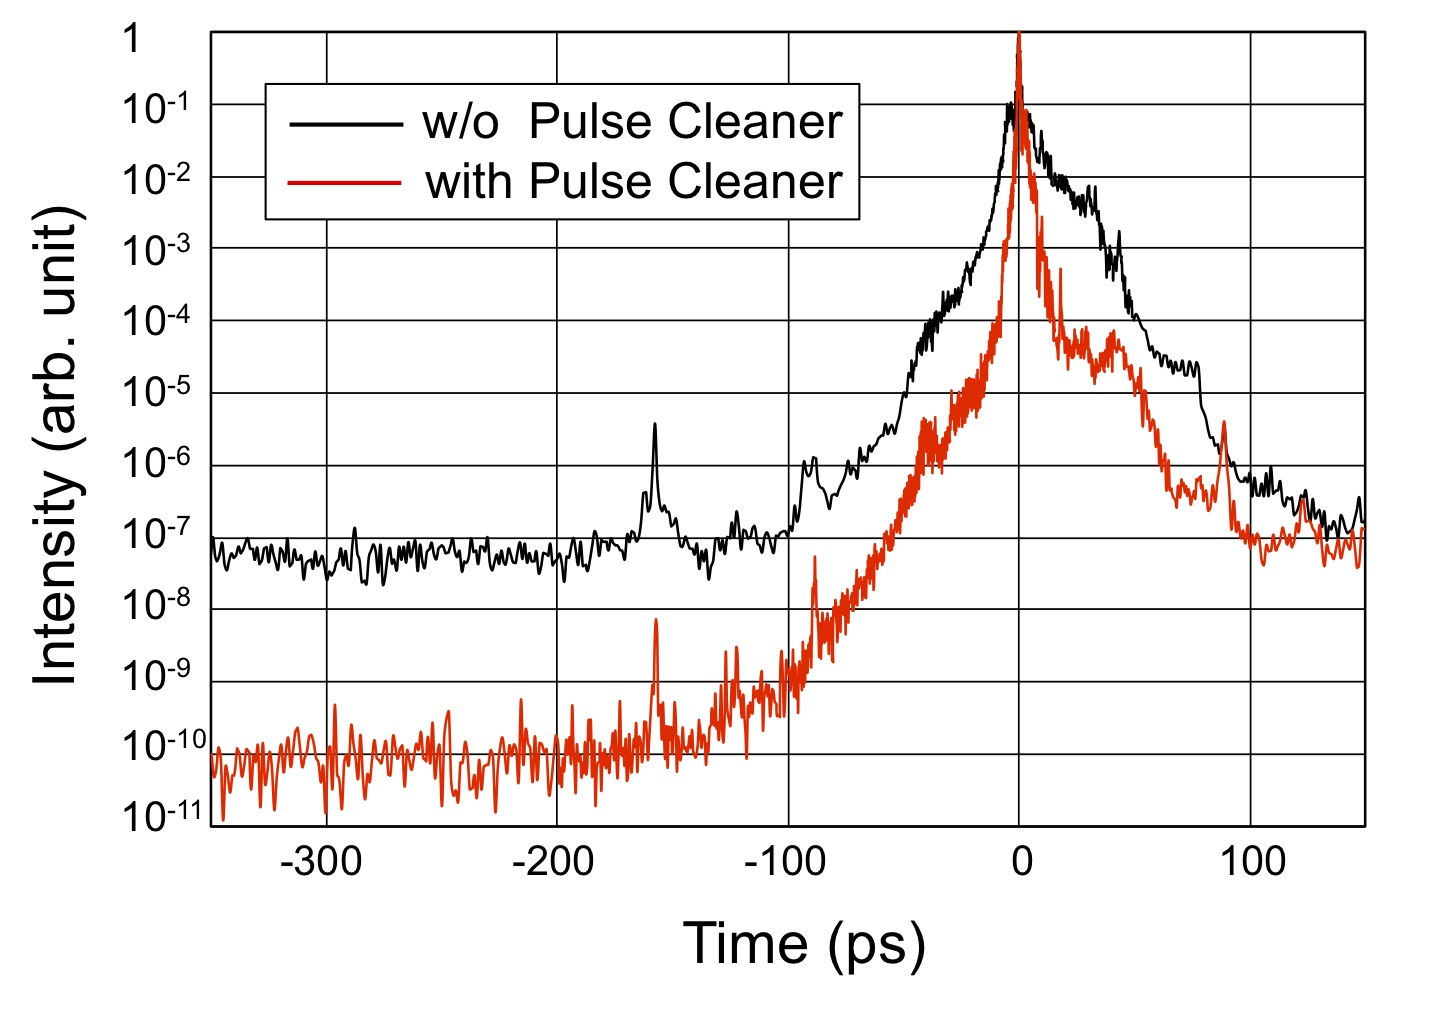 Temporal intensity of the compressed pulse with (red line) and without (black line) a pulse cleaner. The intensity contrast is limited to 1 x 10^10 due to the detector sensitivity